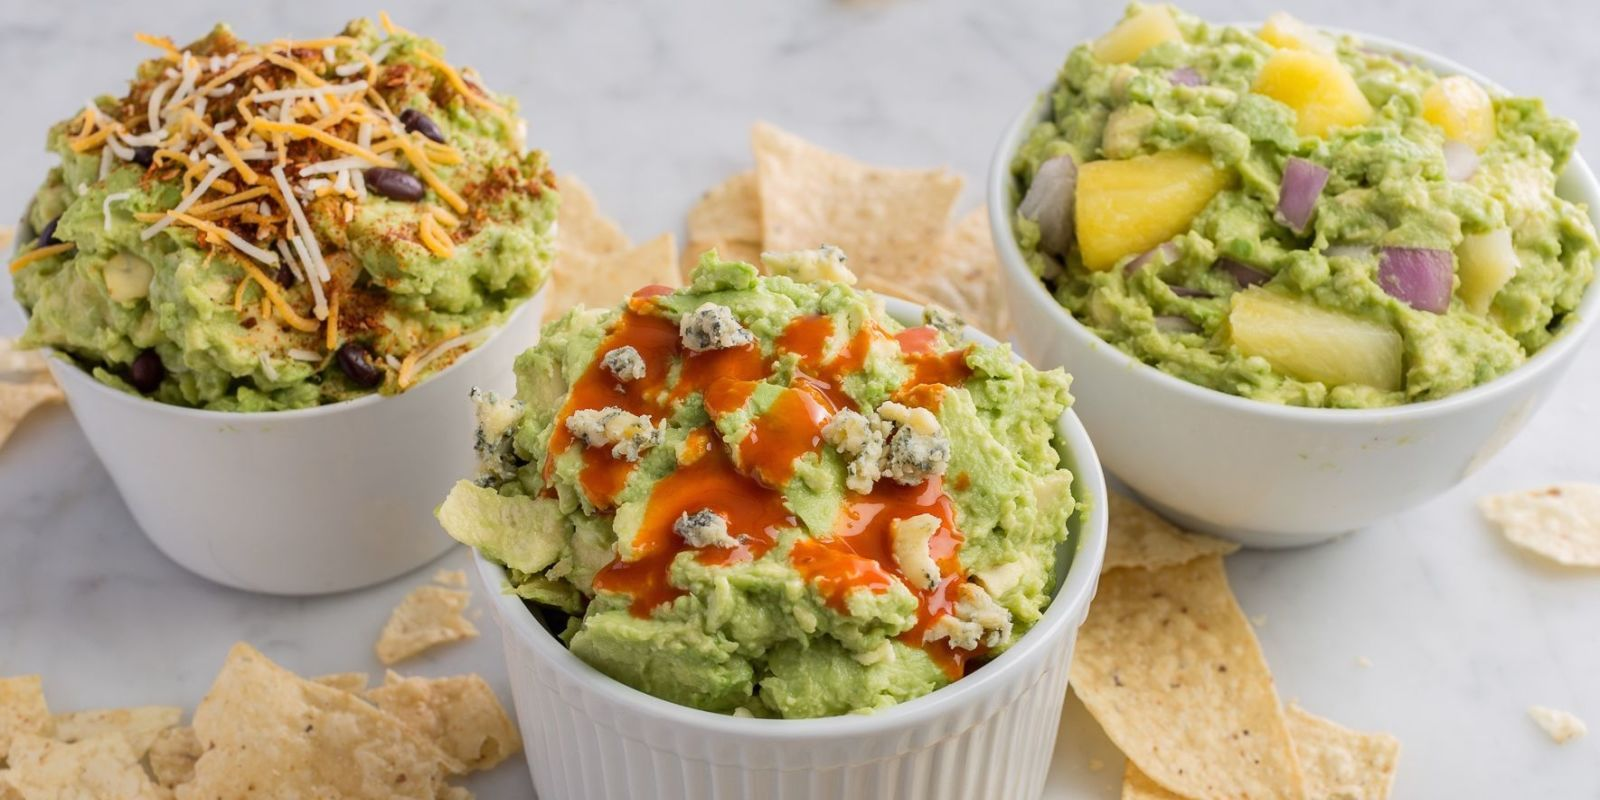 27 Guacamole Recipes To Get Your Party Started